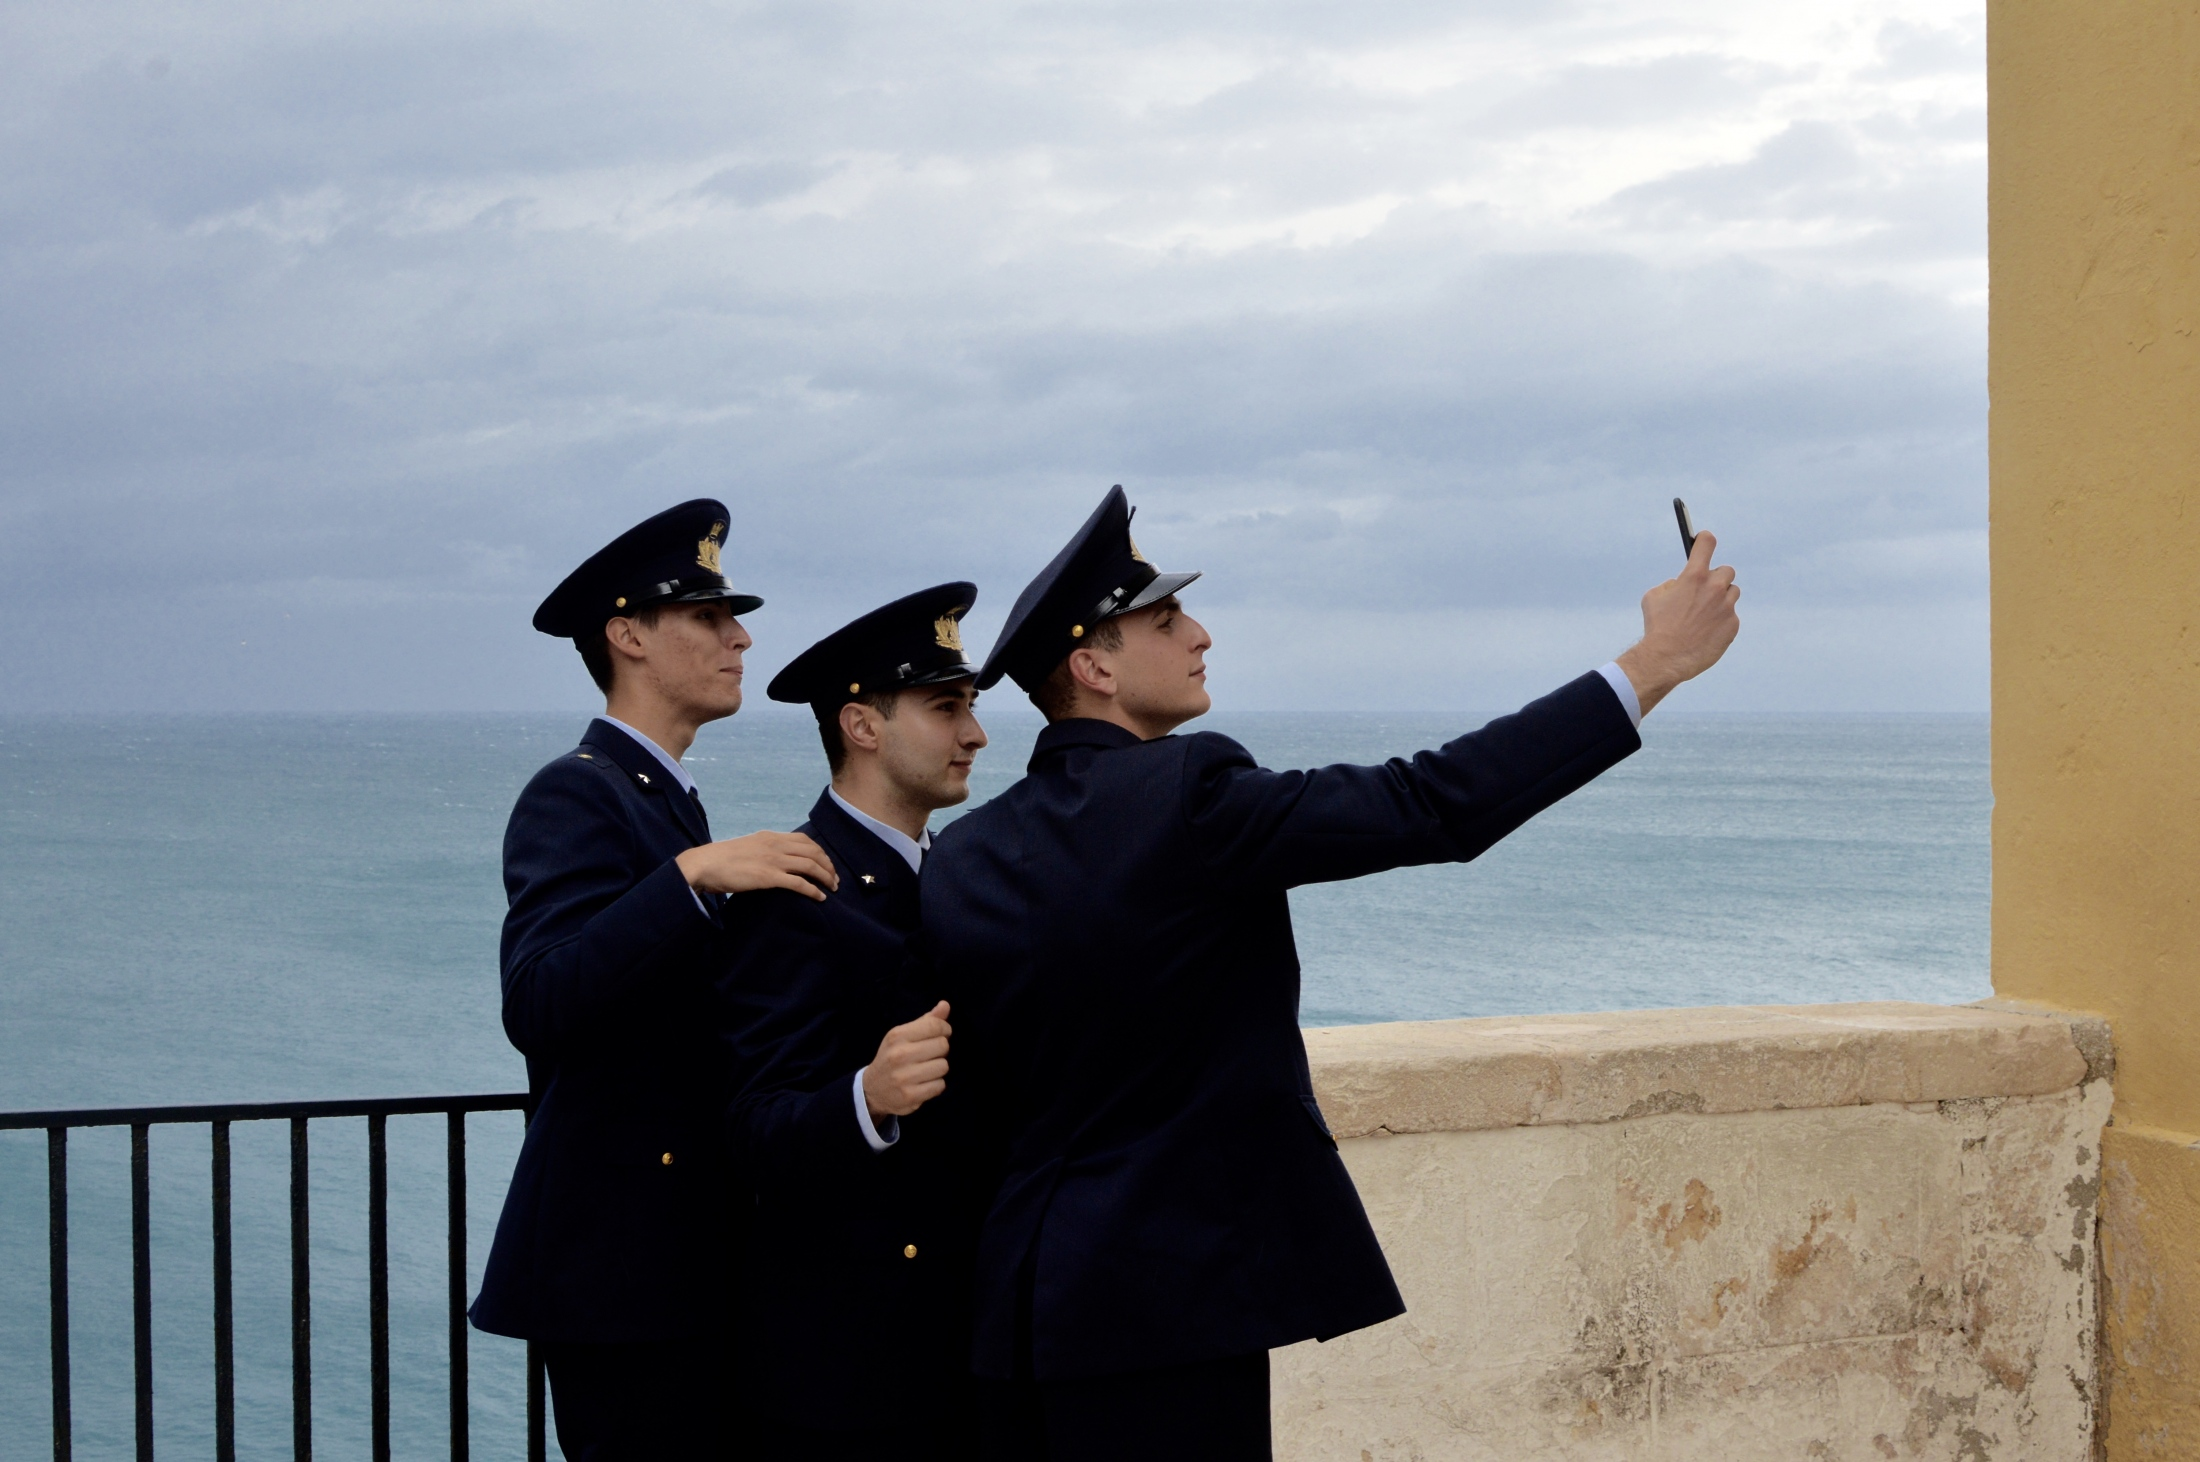 A group of young sailors stops by a panorama point to take a selfie in Polignano a Mare, Italy, November 2018